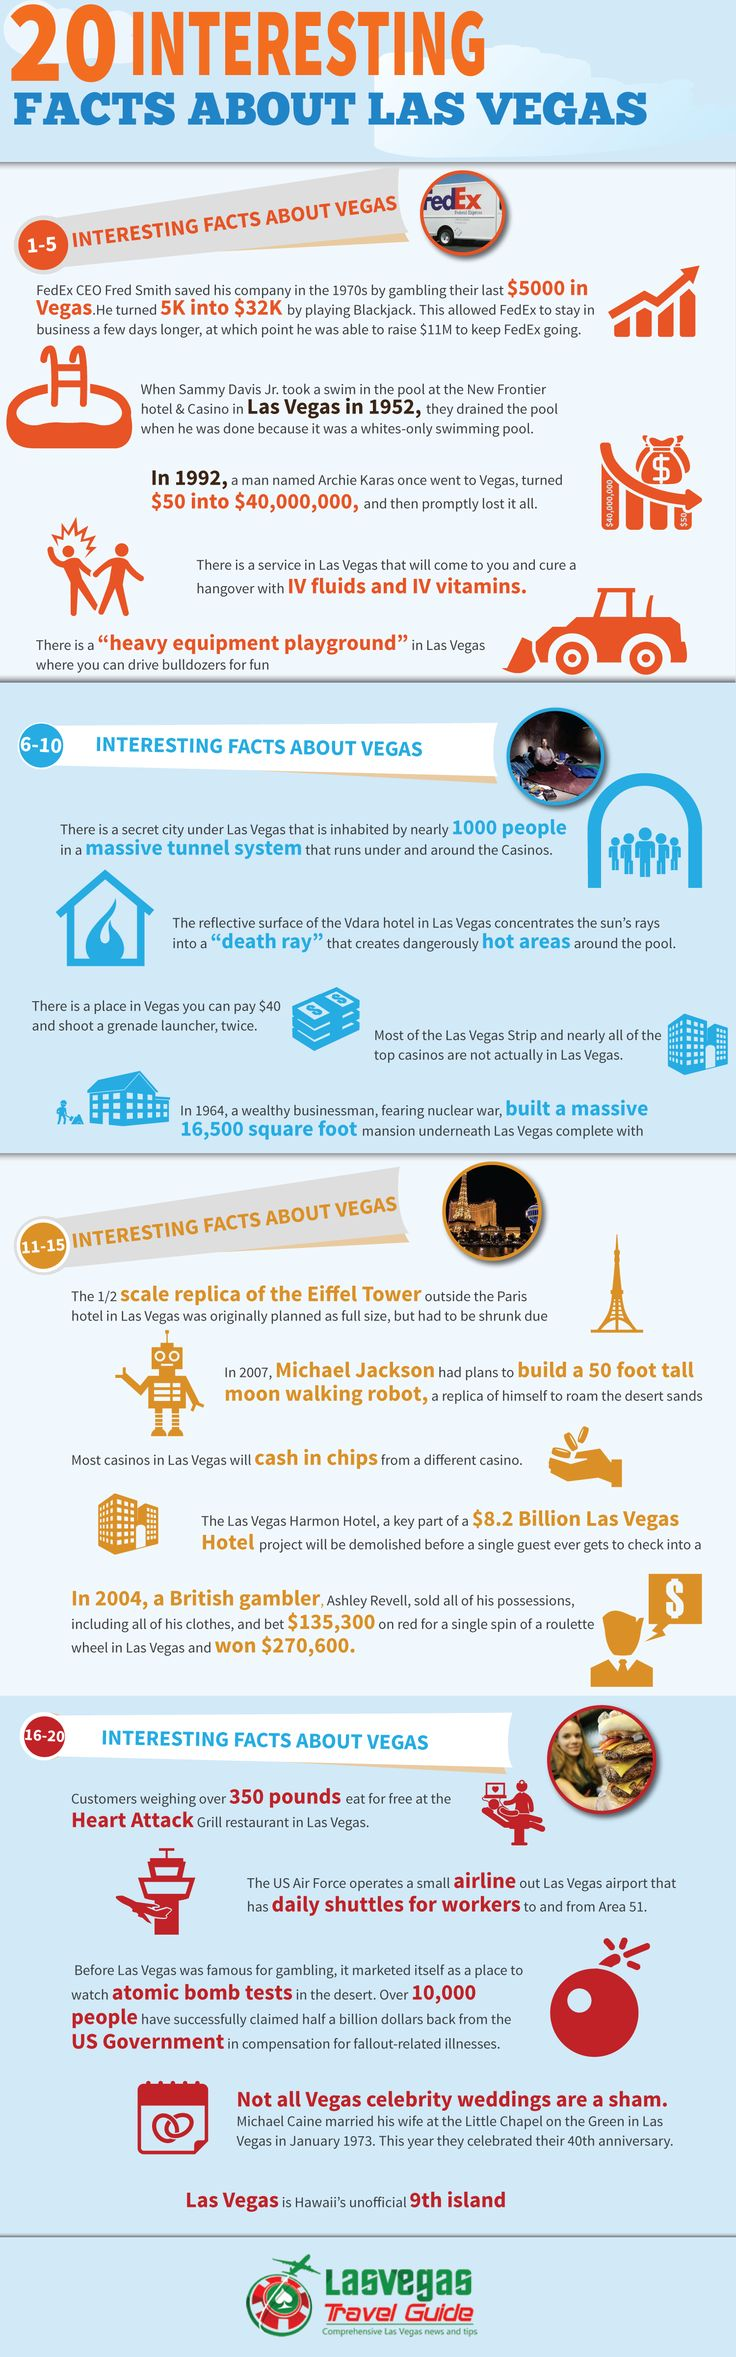 This infographic created by The Las Vegas Travel Guide (http://www.las-vegastravelguide.com) details the 20 most interesting facts about Las Vegas. It is full of fun and humorous facts about the world's wildest and craziest gambling city.  Source: http://www.las-vegastravelguide.com/infographic-20-interesting-facts-las-vegas/